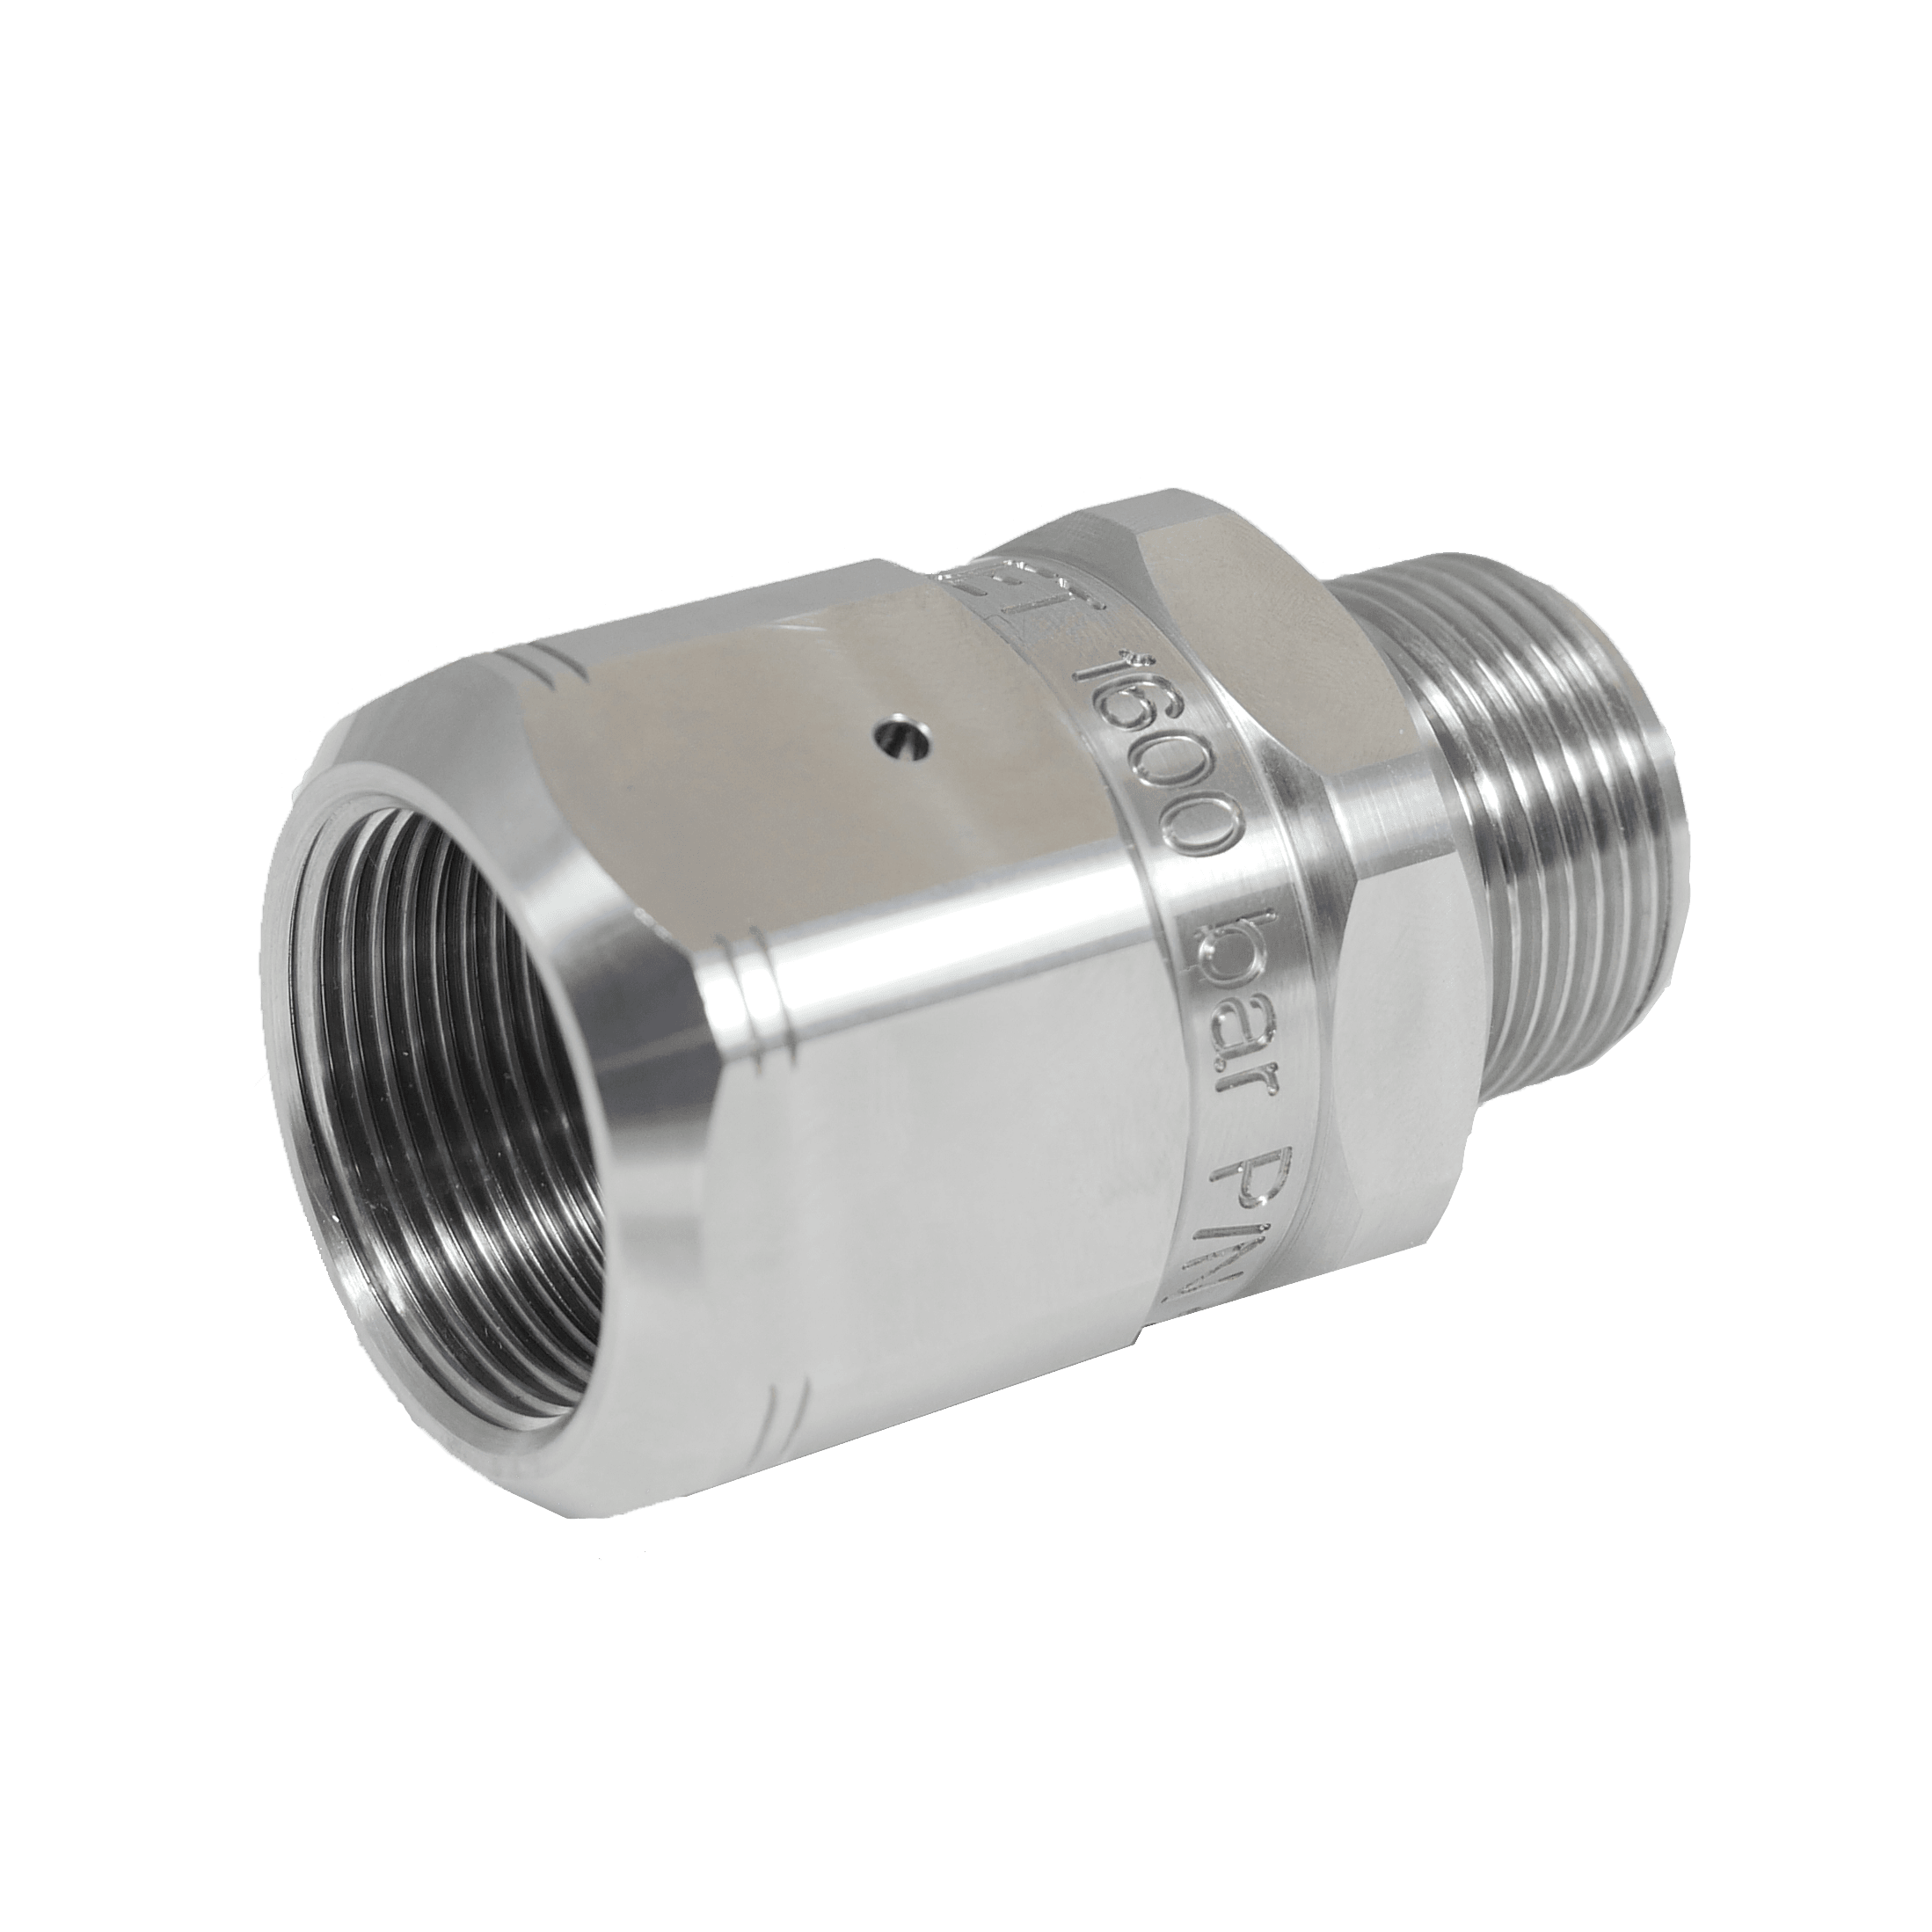 Stainless steel High Pressure Adapter